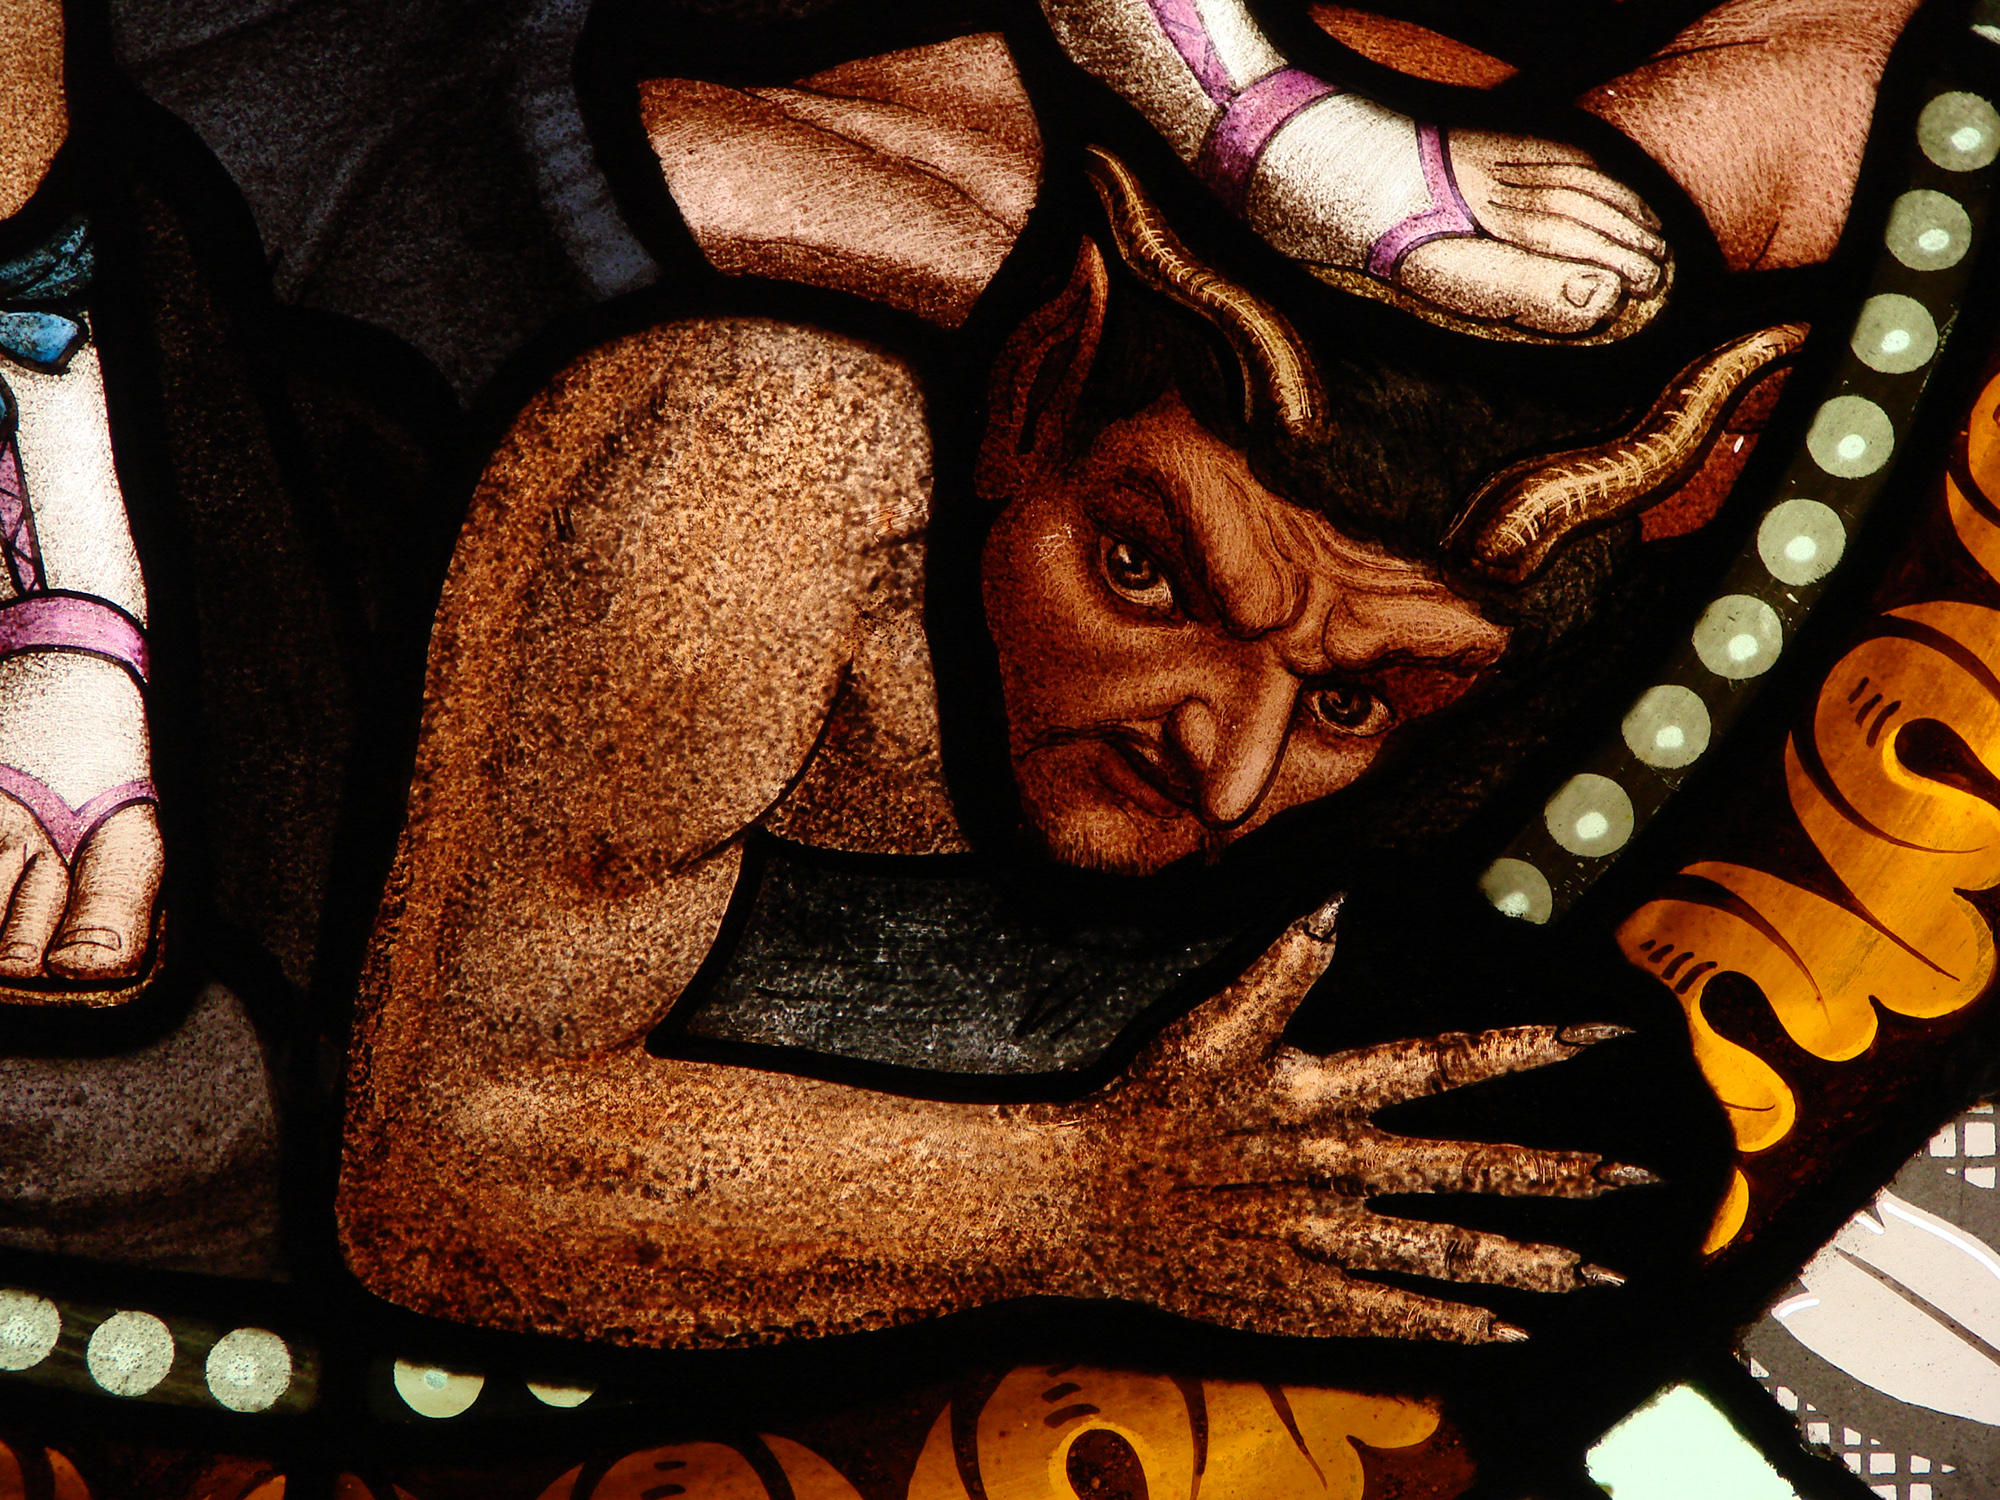 Demon in a Stained Glass Window of Saint-Martin de Florac